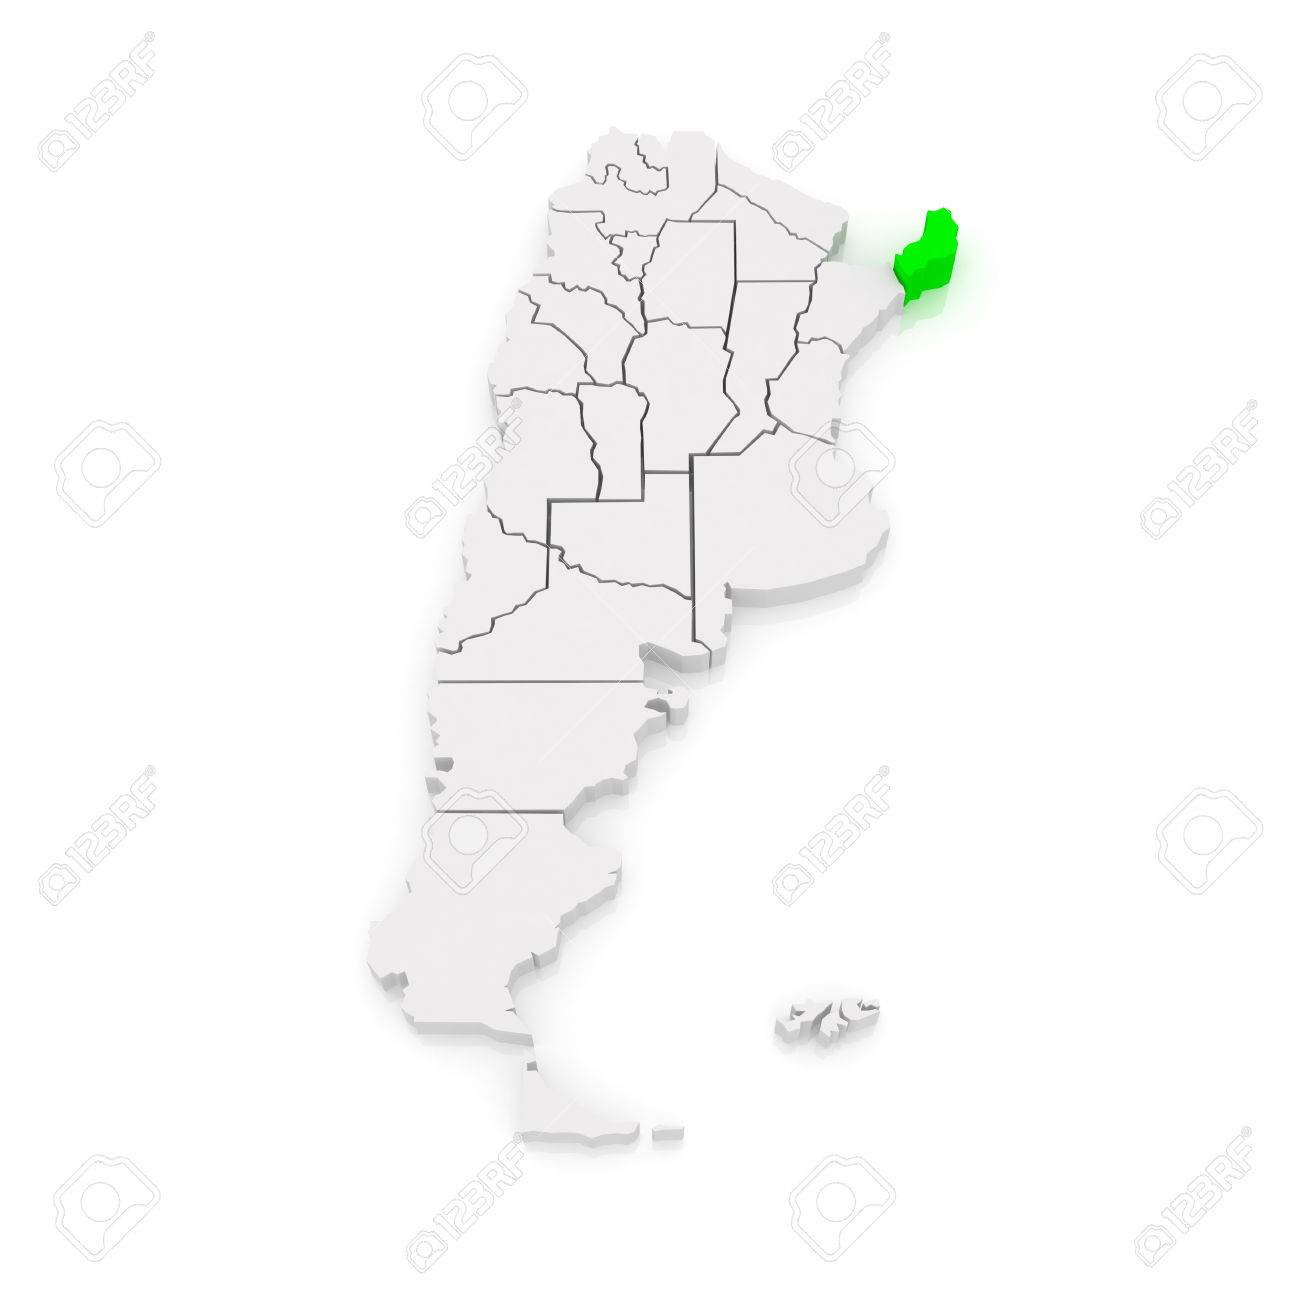 Map Of Misiones Argentina D Stock Photo Picture And Royalty - Argentina misiones map